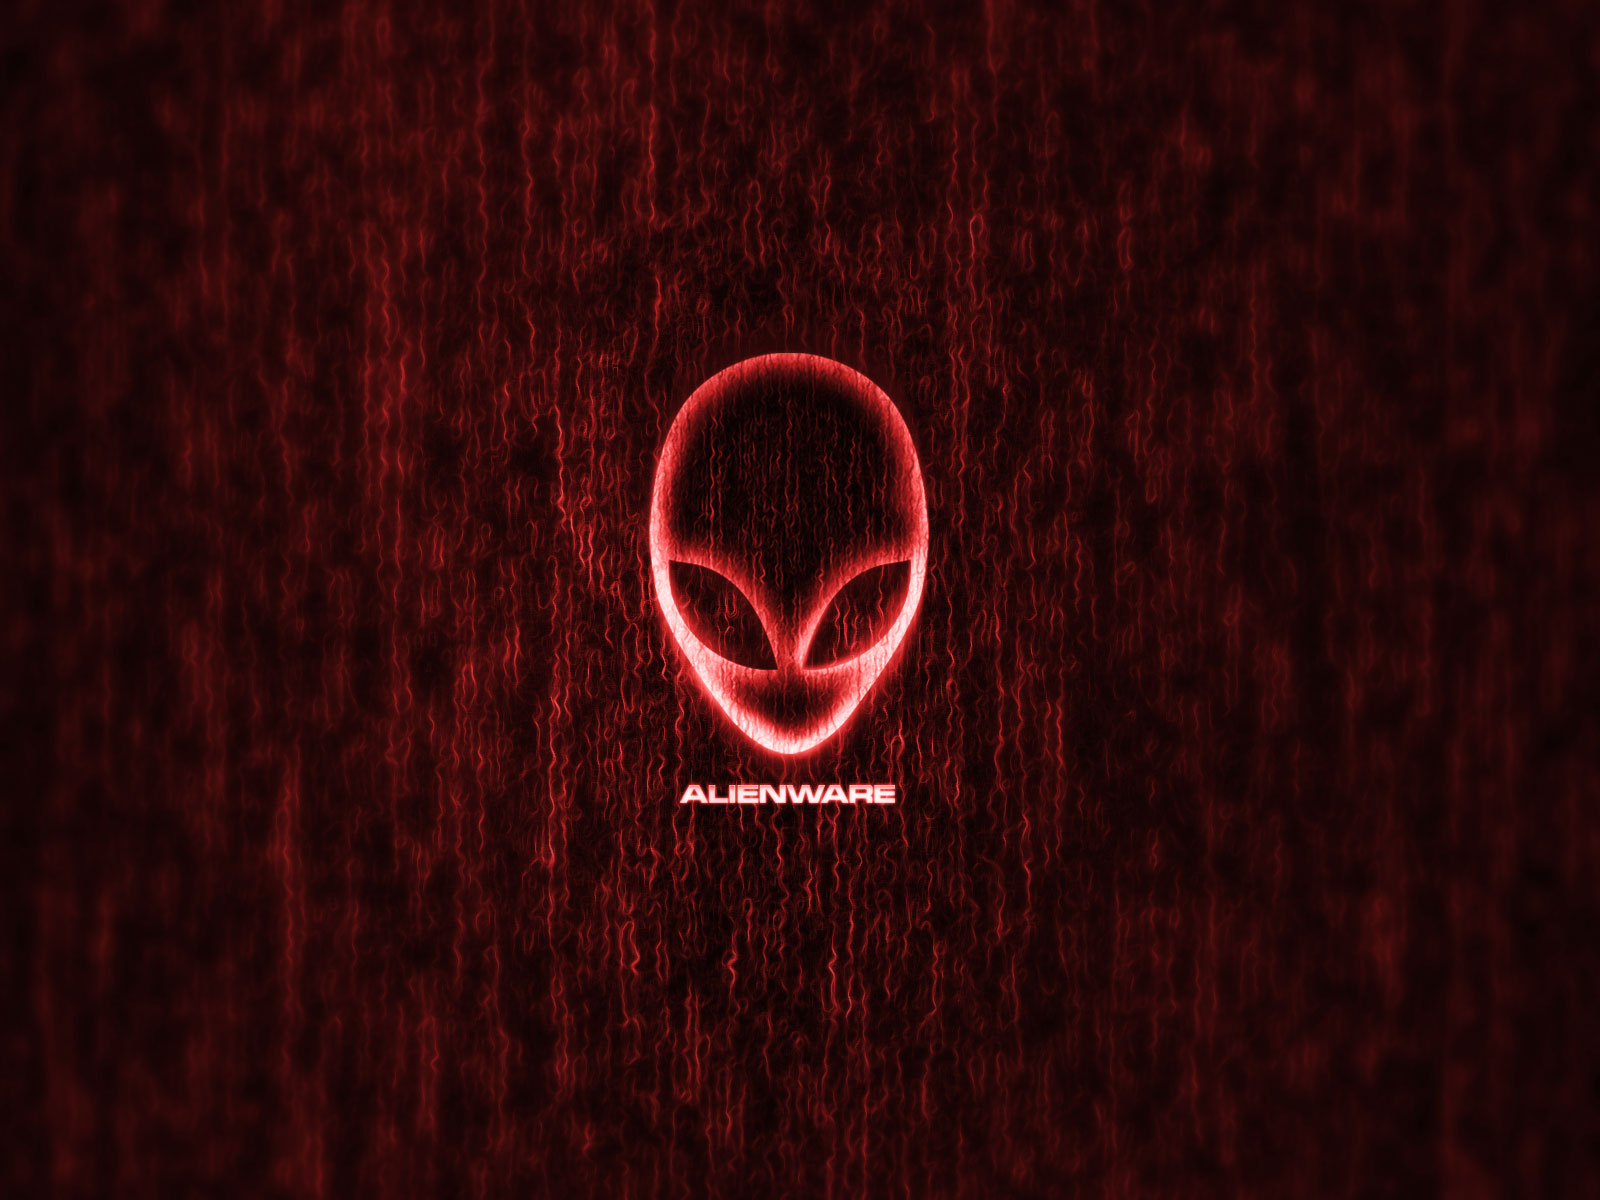 Alienware Wallpaper Red Wallpaper Desktop HD Download Dream 1600x1200